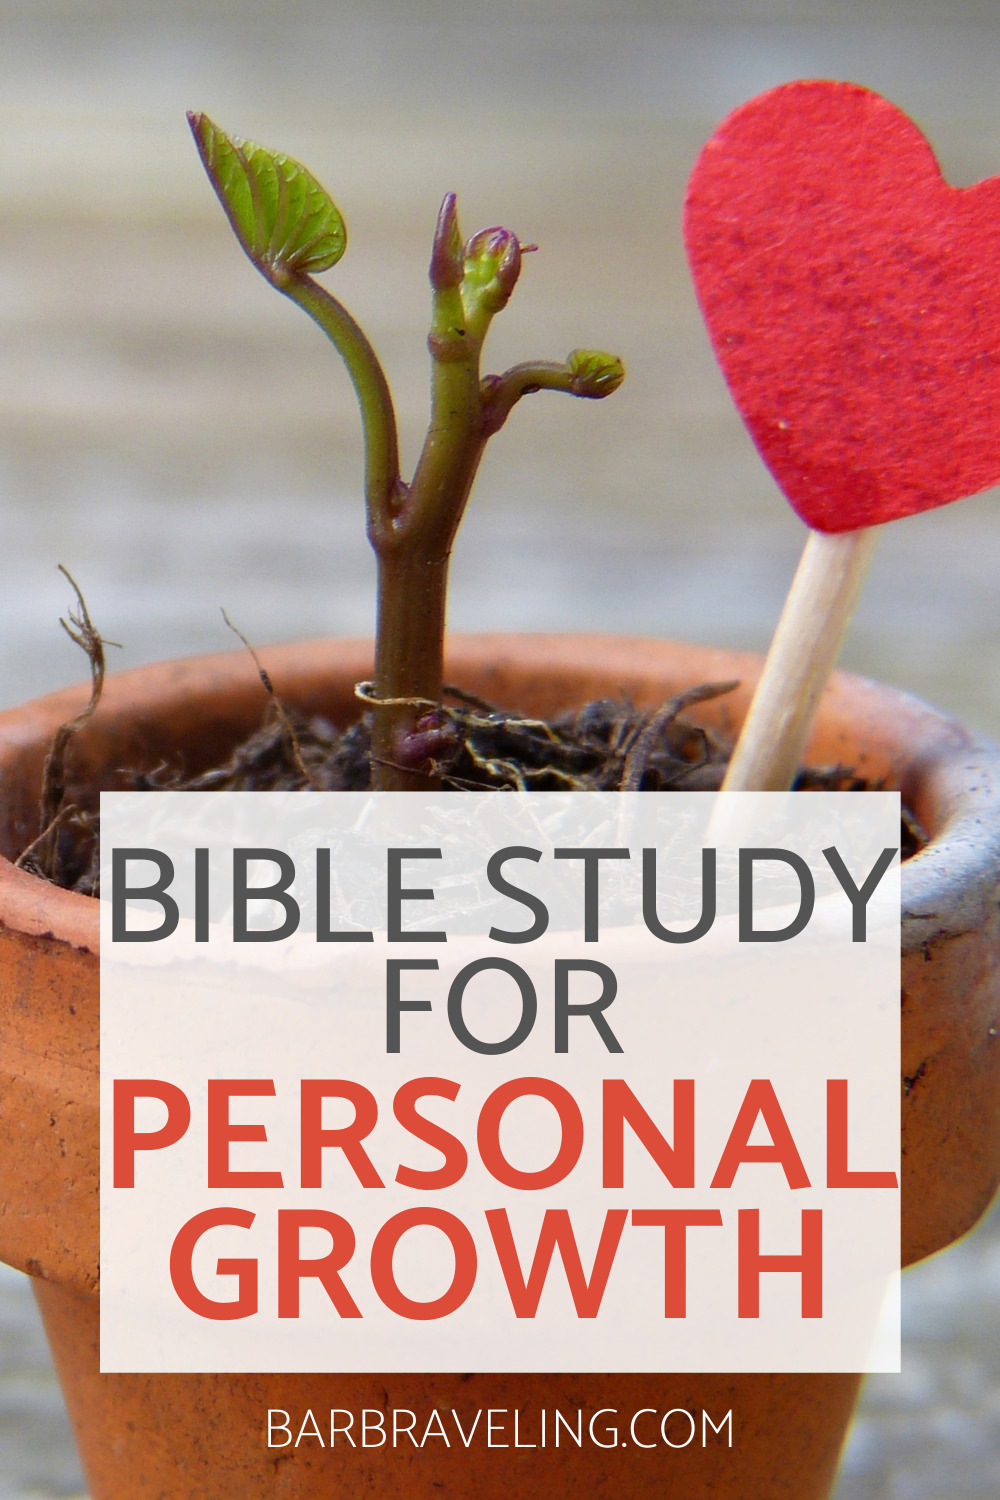 Do you ever feel like you want to grow as a Christian, but you don't see it happening? In this personal growth Bible study, we'll look at how to pursue growth and receive the fruit of the Spirit (love, joy, peace, etc.) in the process!